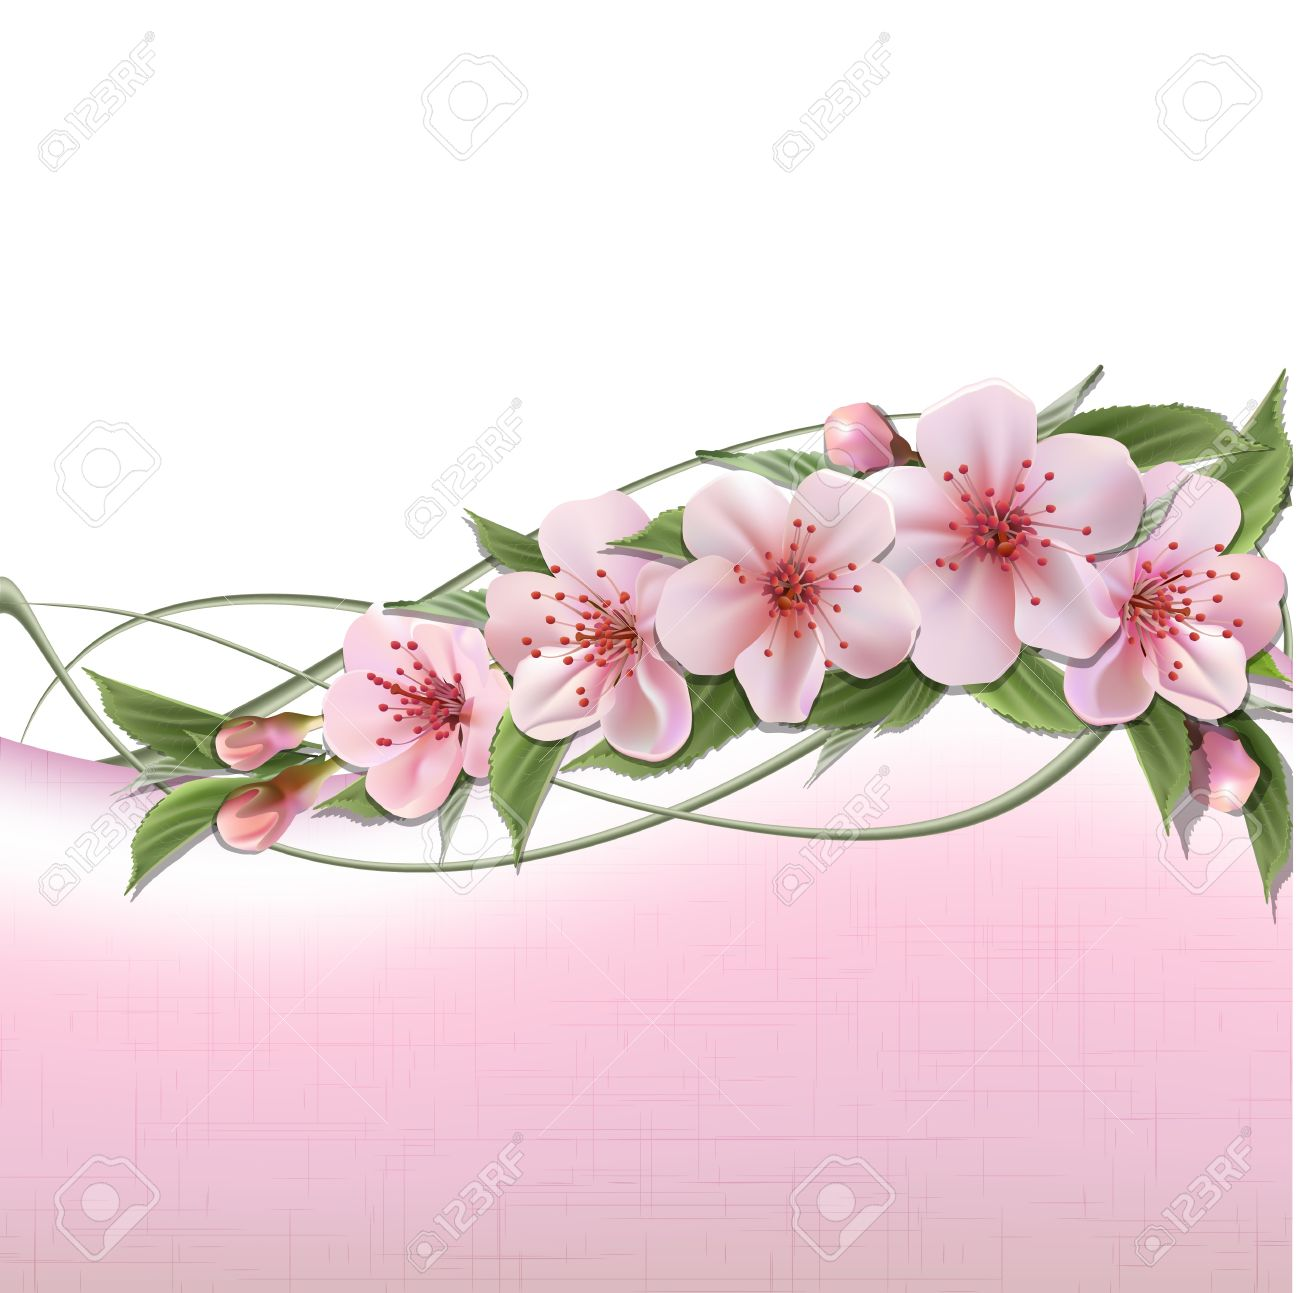 Spring Header With Pink Cherry Flowers Buds And Copy Space Royalty